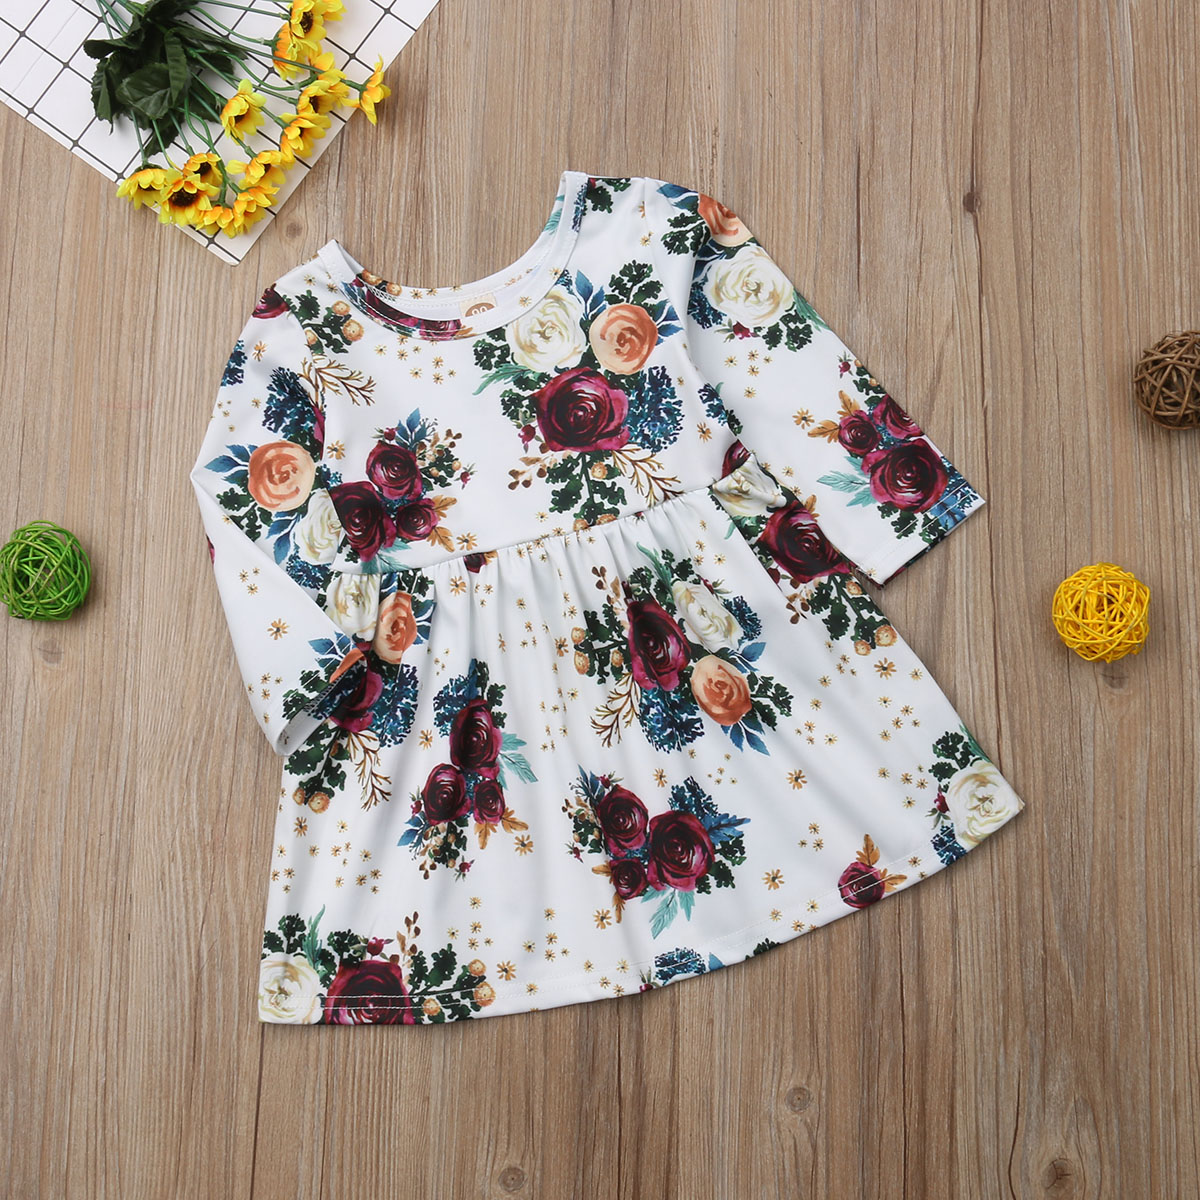 Pudcoco Summer Toddler Infant Baby Kids Girl Clothes Princess Floral Formal Dress Wedding Pageant 2019 in Dresses from Mother Kids